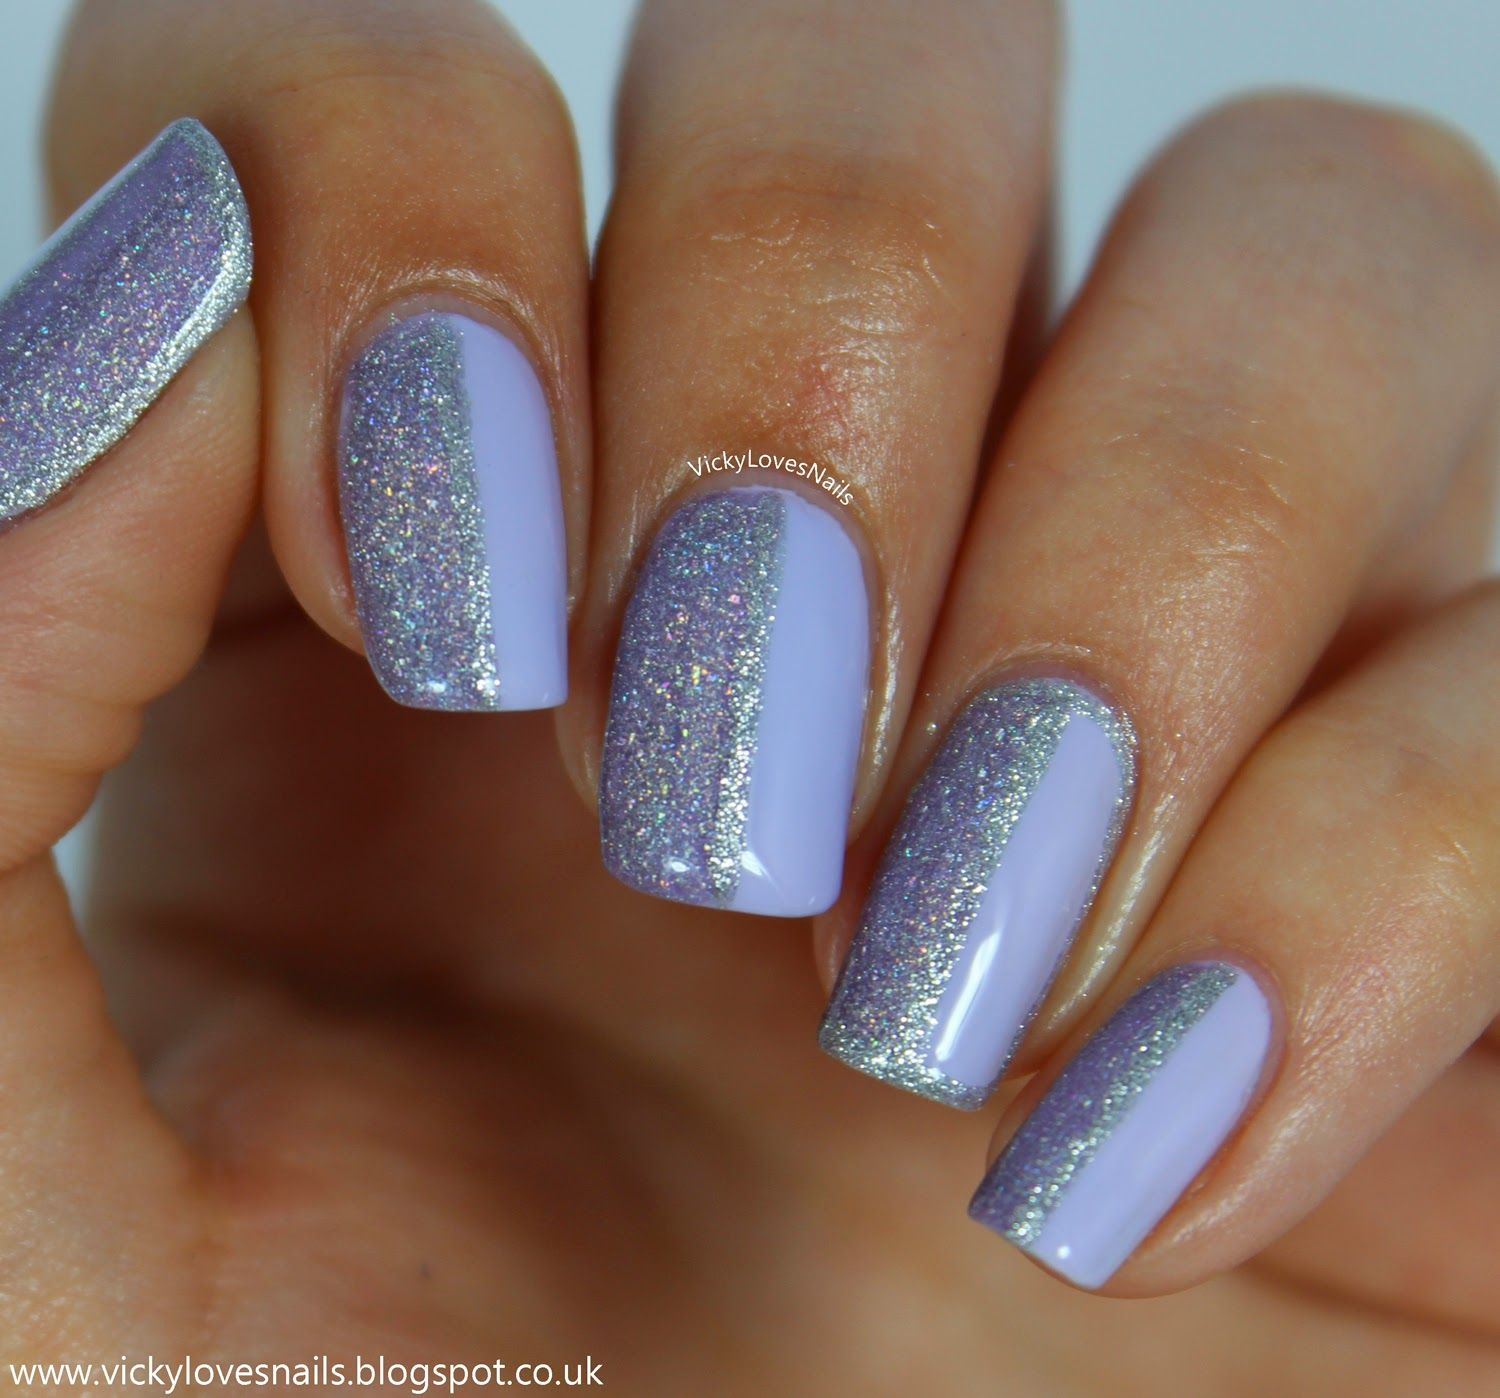 vicky loves nails: half and half manicure | my nail art